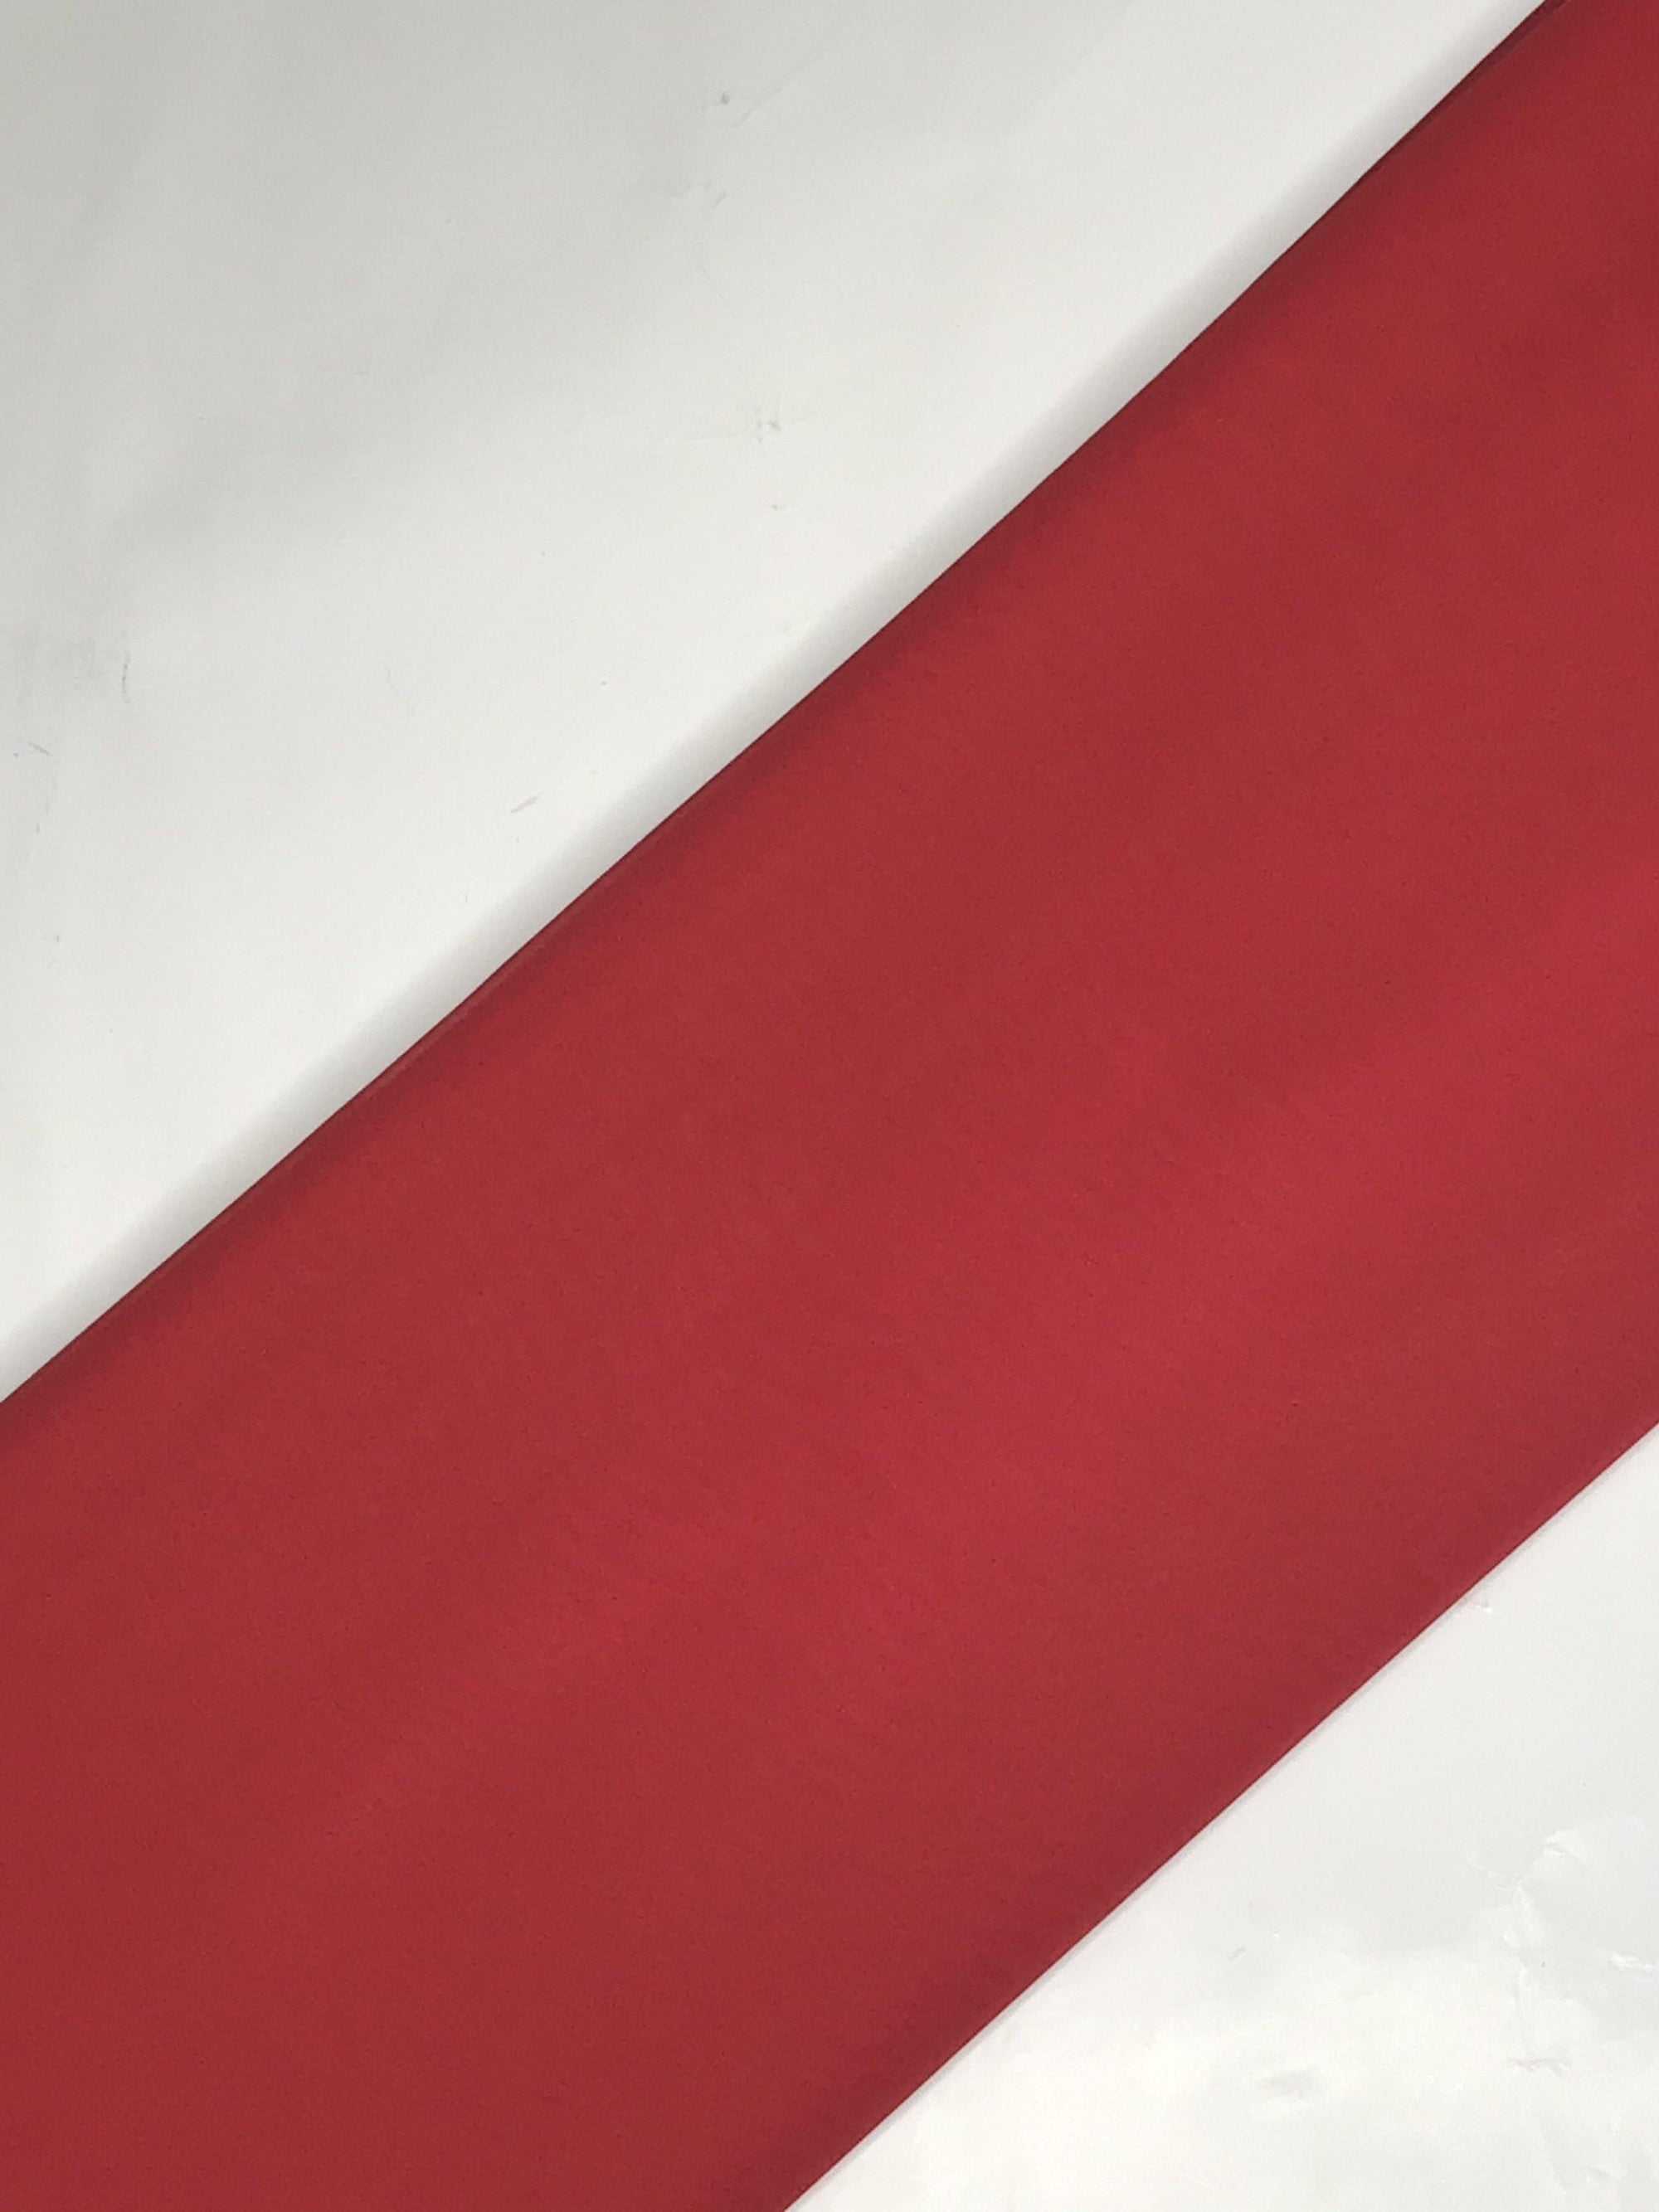 Red Georgette Plain Dyed Fabric (Width - 58 inches)